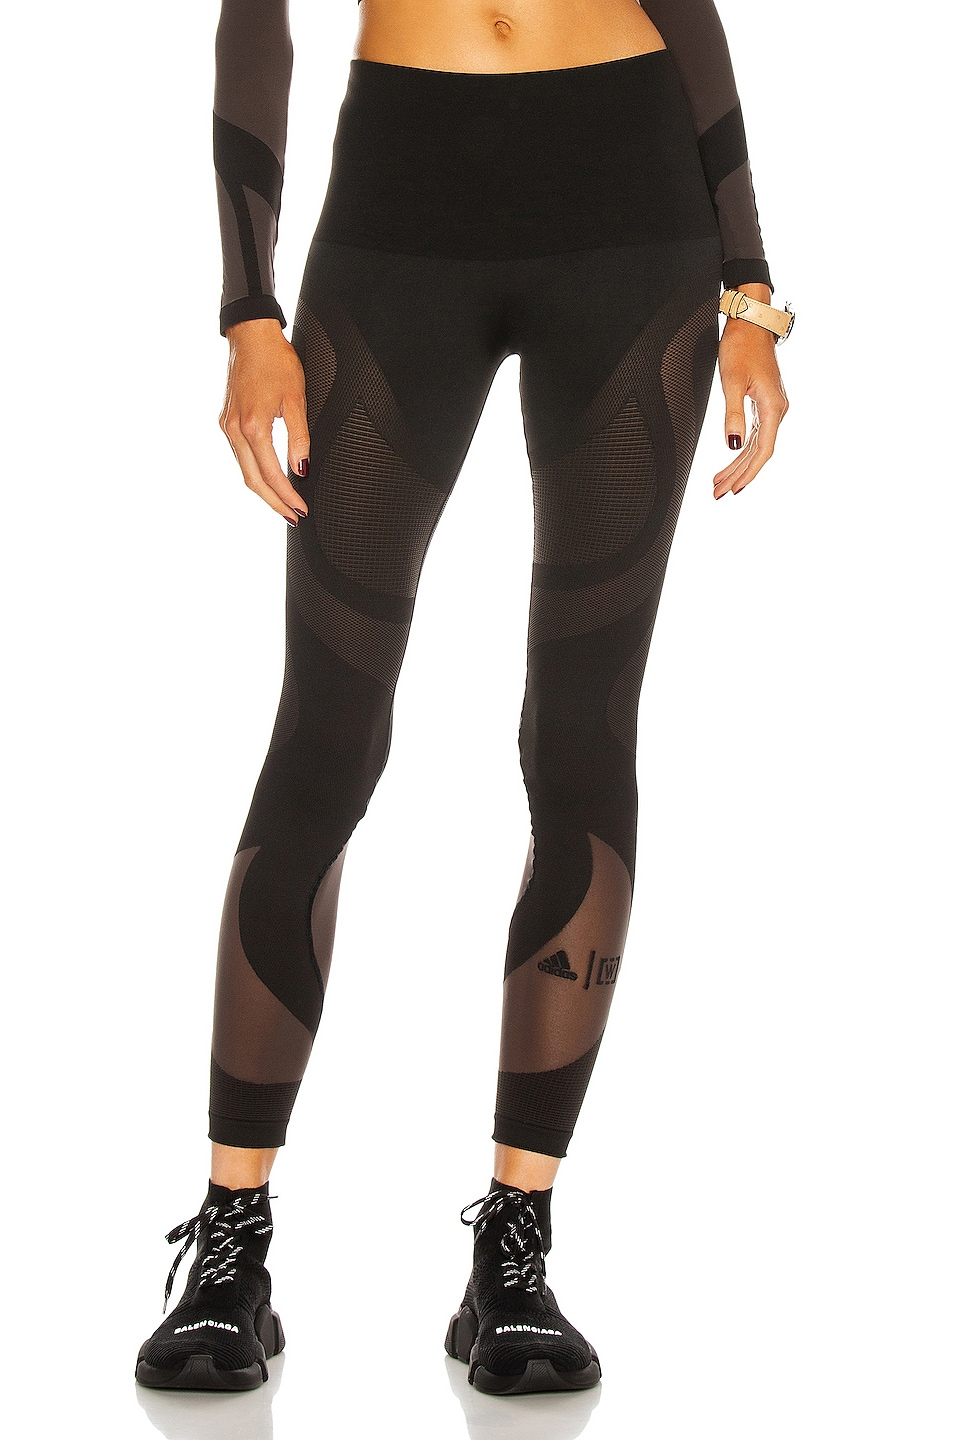 Image 1 of Wolford x Adidas Sheer Motion Legging in Black & Nearly Black